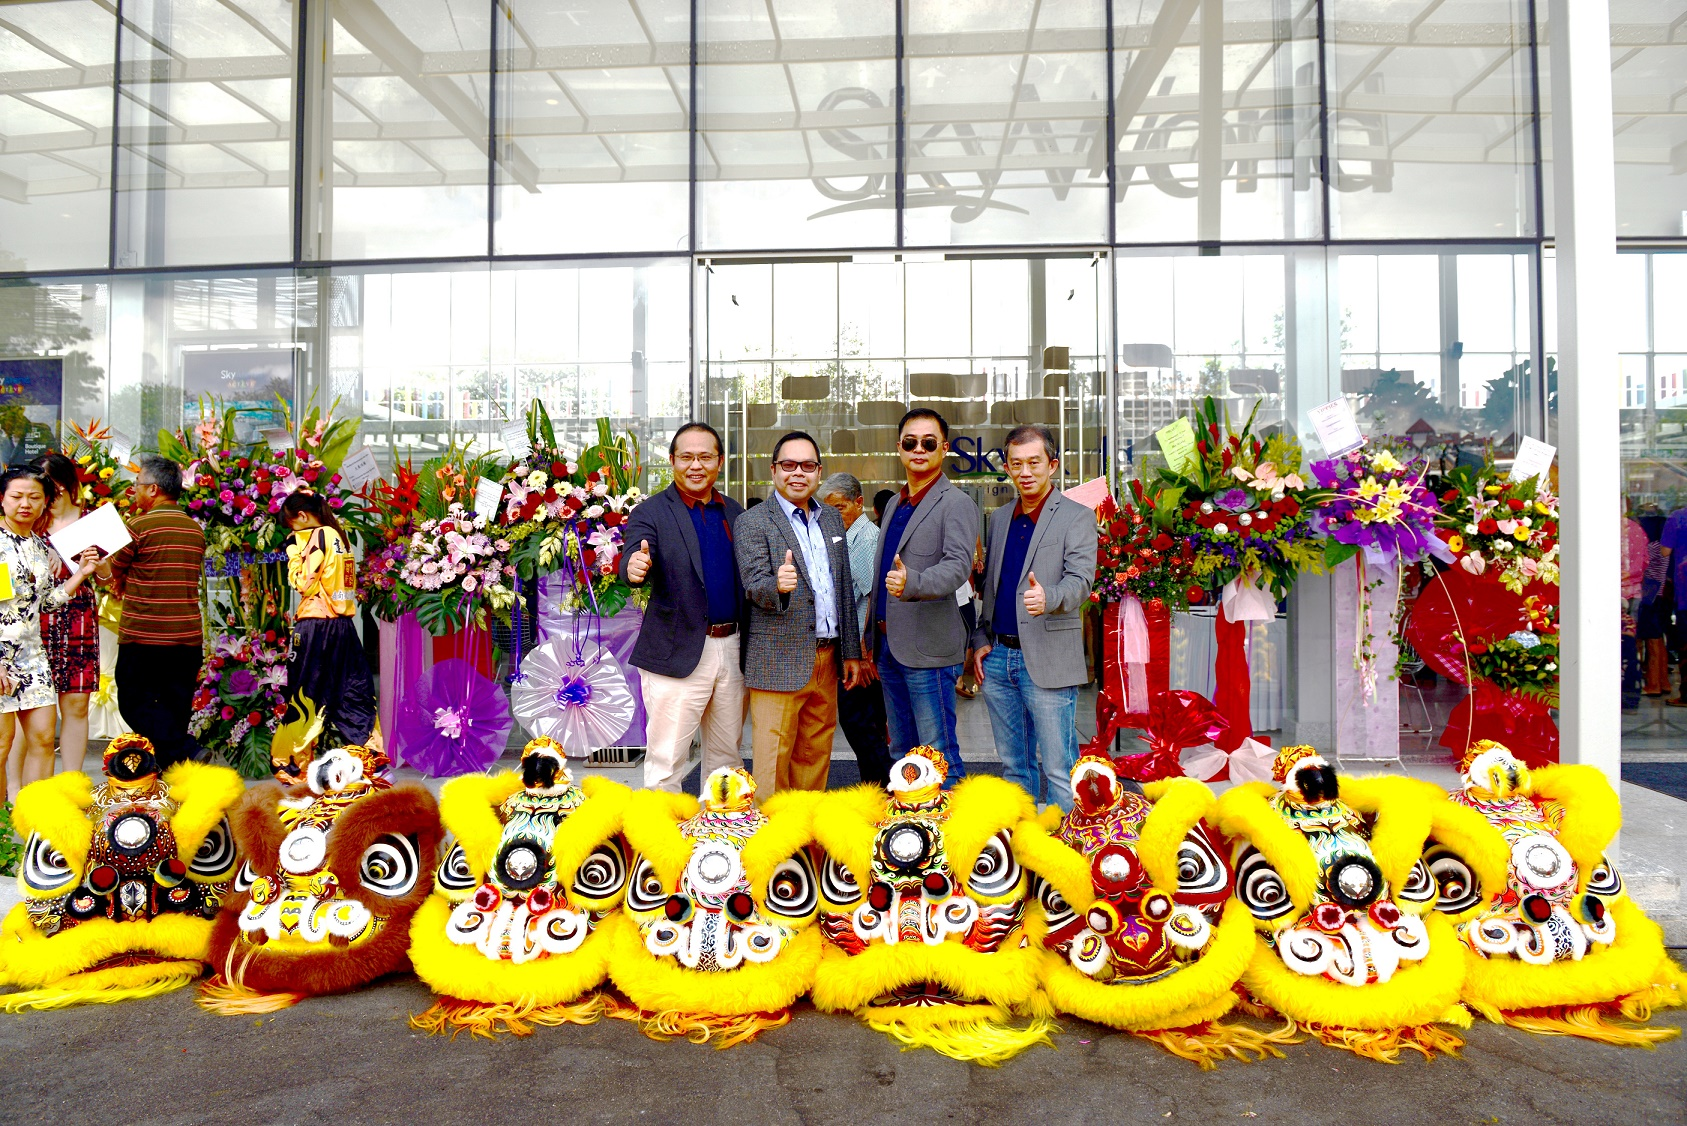 Awakening the Lion - Dotting of the Lion's eye. (From L to R): SkyWorld chief project officer CS Lee, group managing director Datuk Ng Thien Ping, group deputy managing director SK Lam and chief finance officer CS Siew.